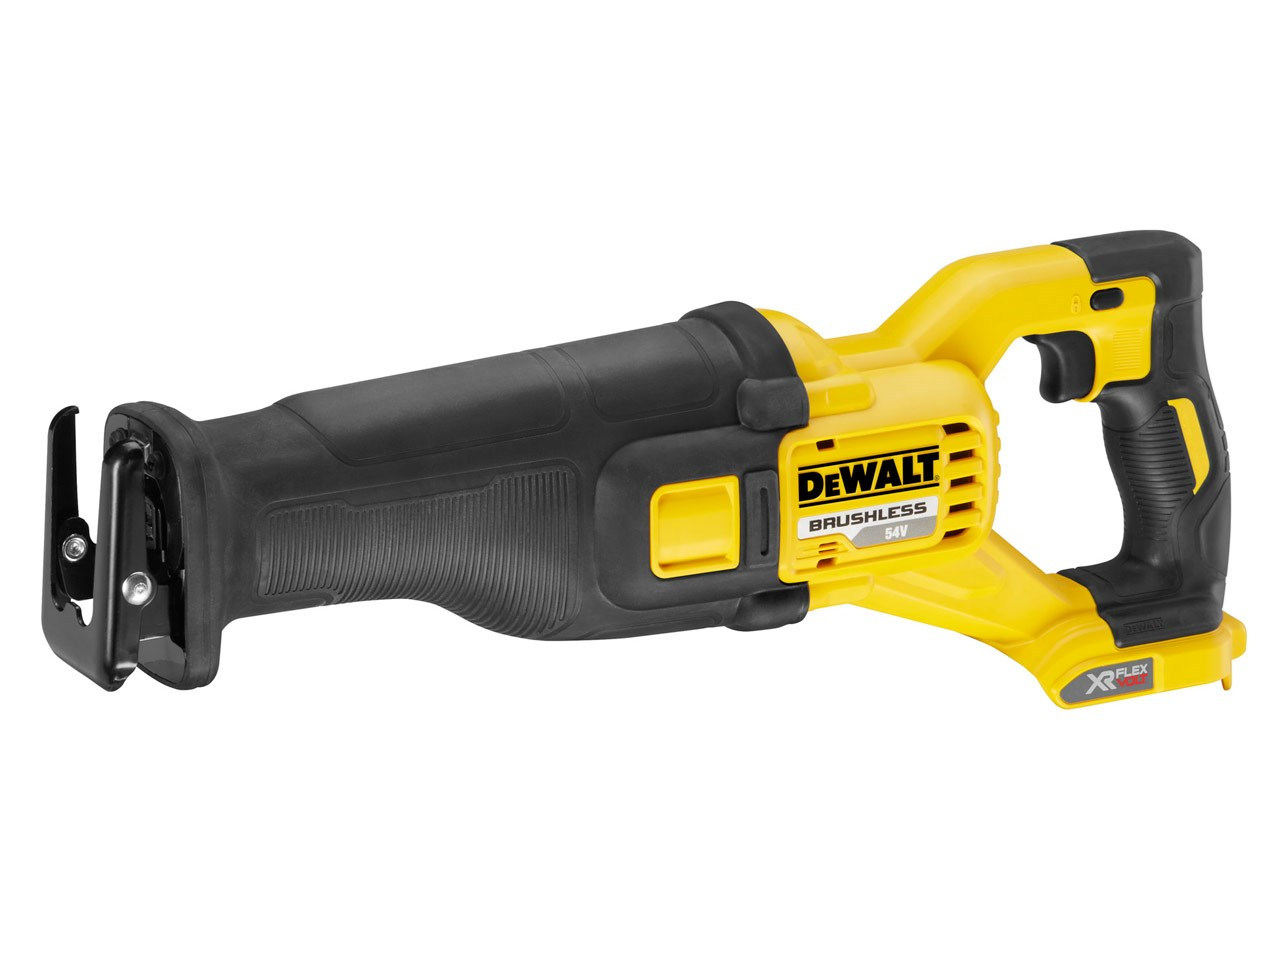 Dewalt dcs388n xj 54v xr flexvolt reciprocating saw bare unit greentooth